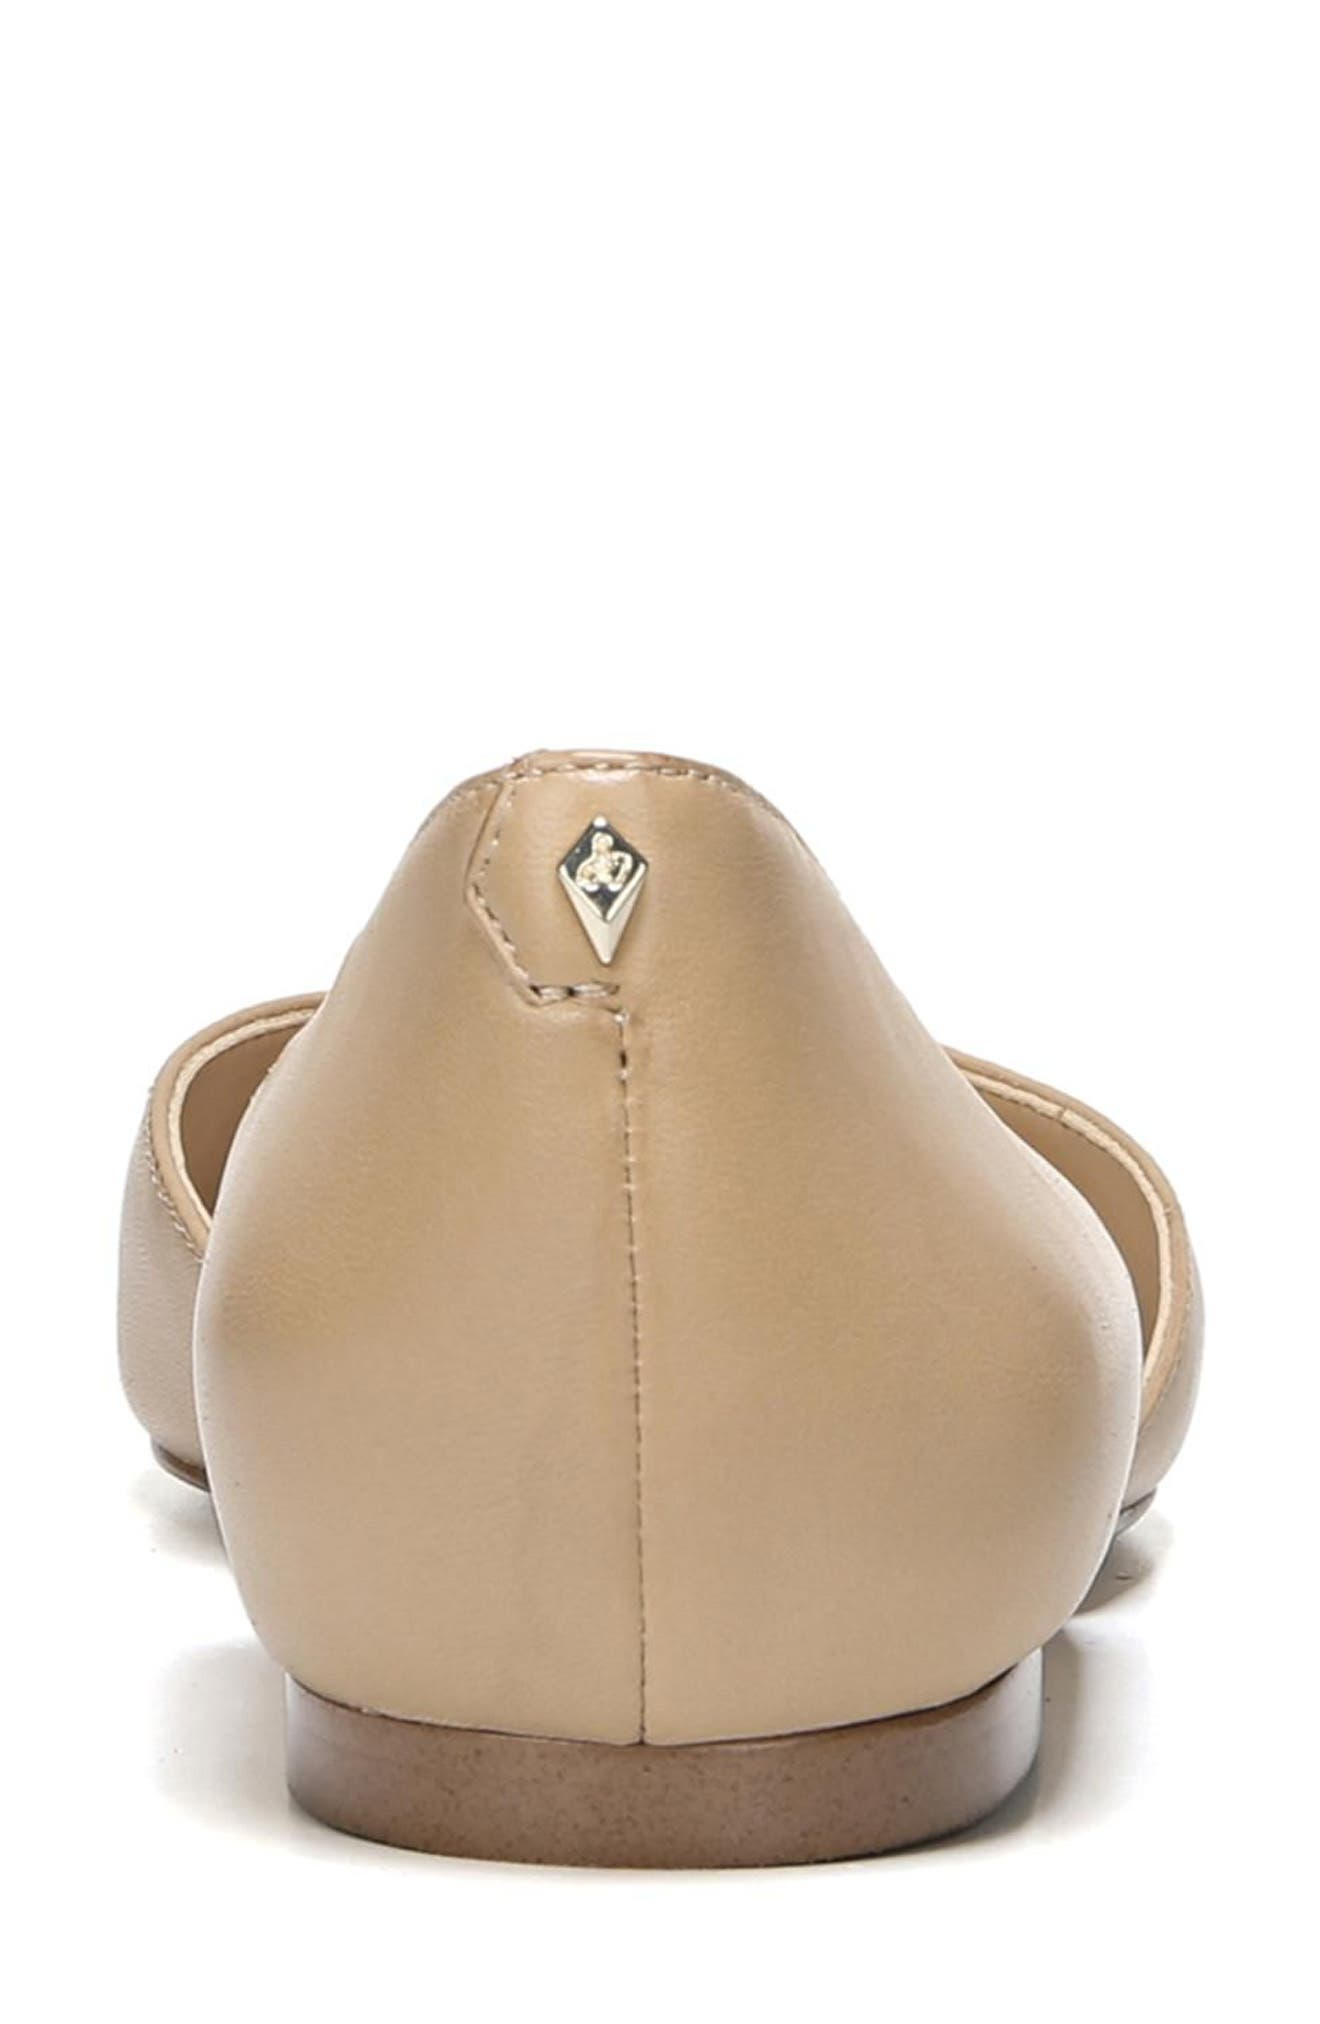 SAM EDELMAN, Rodney Pointy Toe d'Orsay Flat, Alternate thumbnail 7, color, CLASSIC NUDE LEATHER